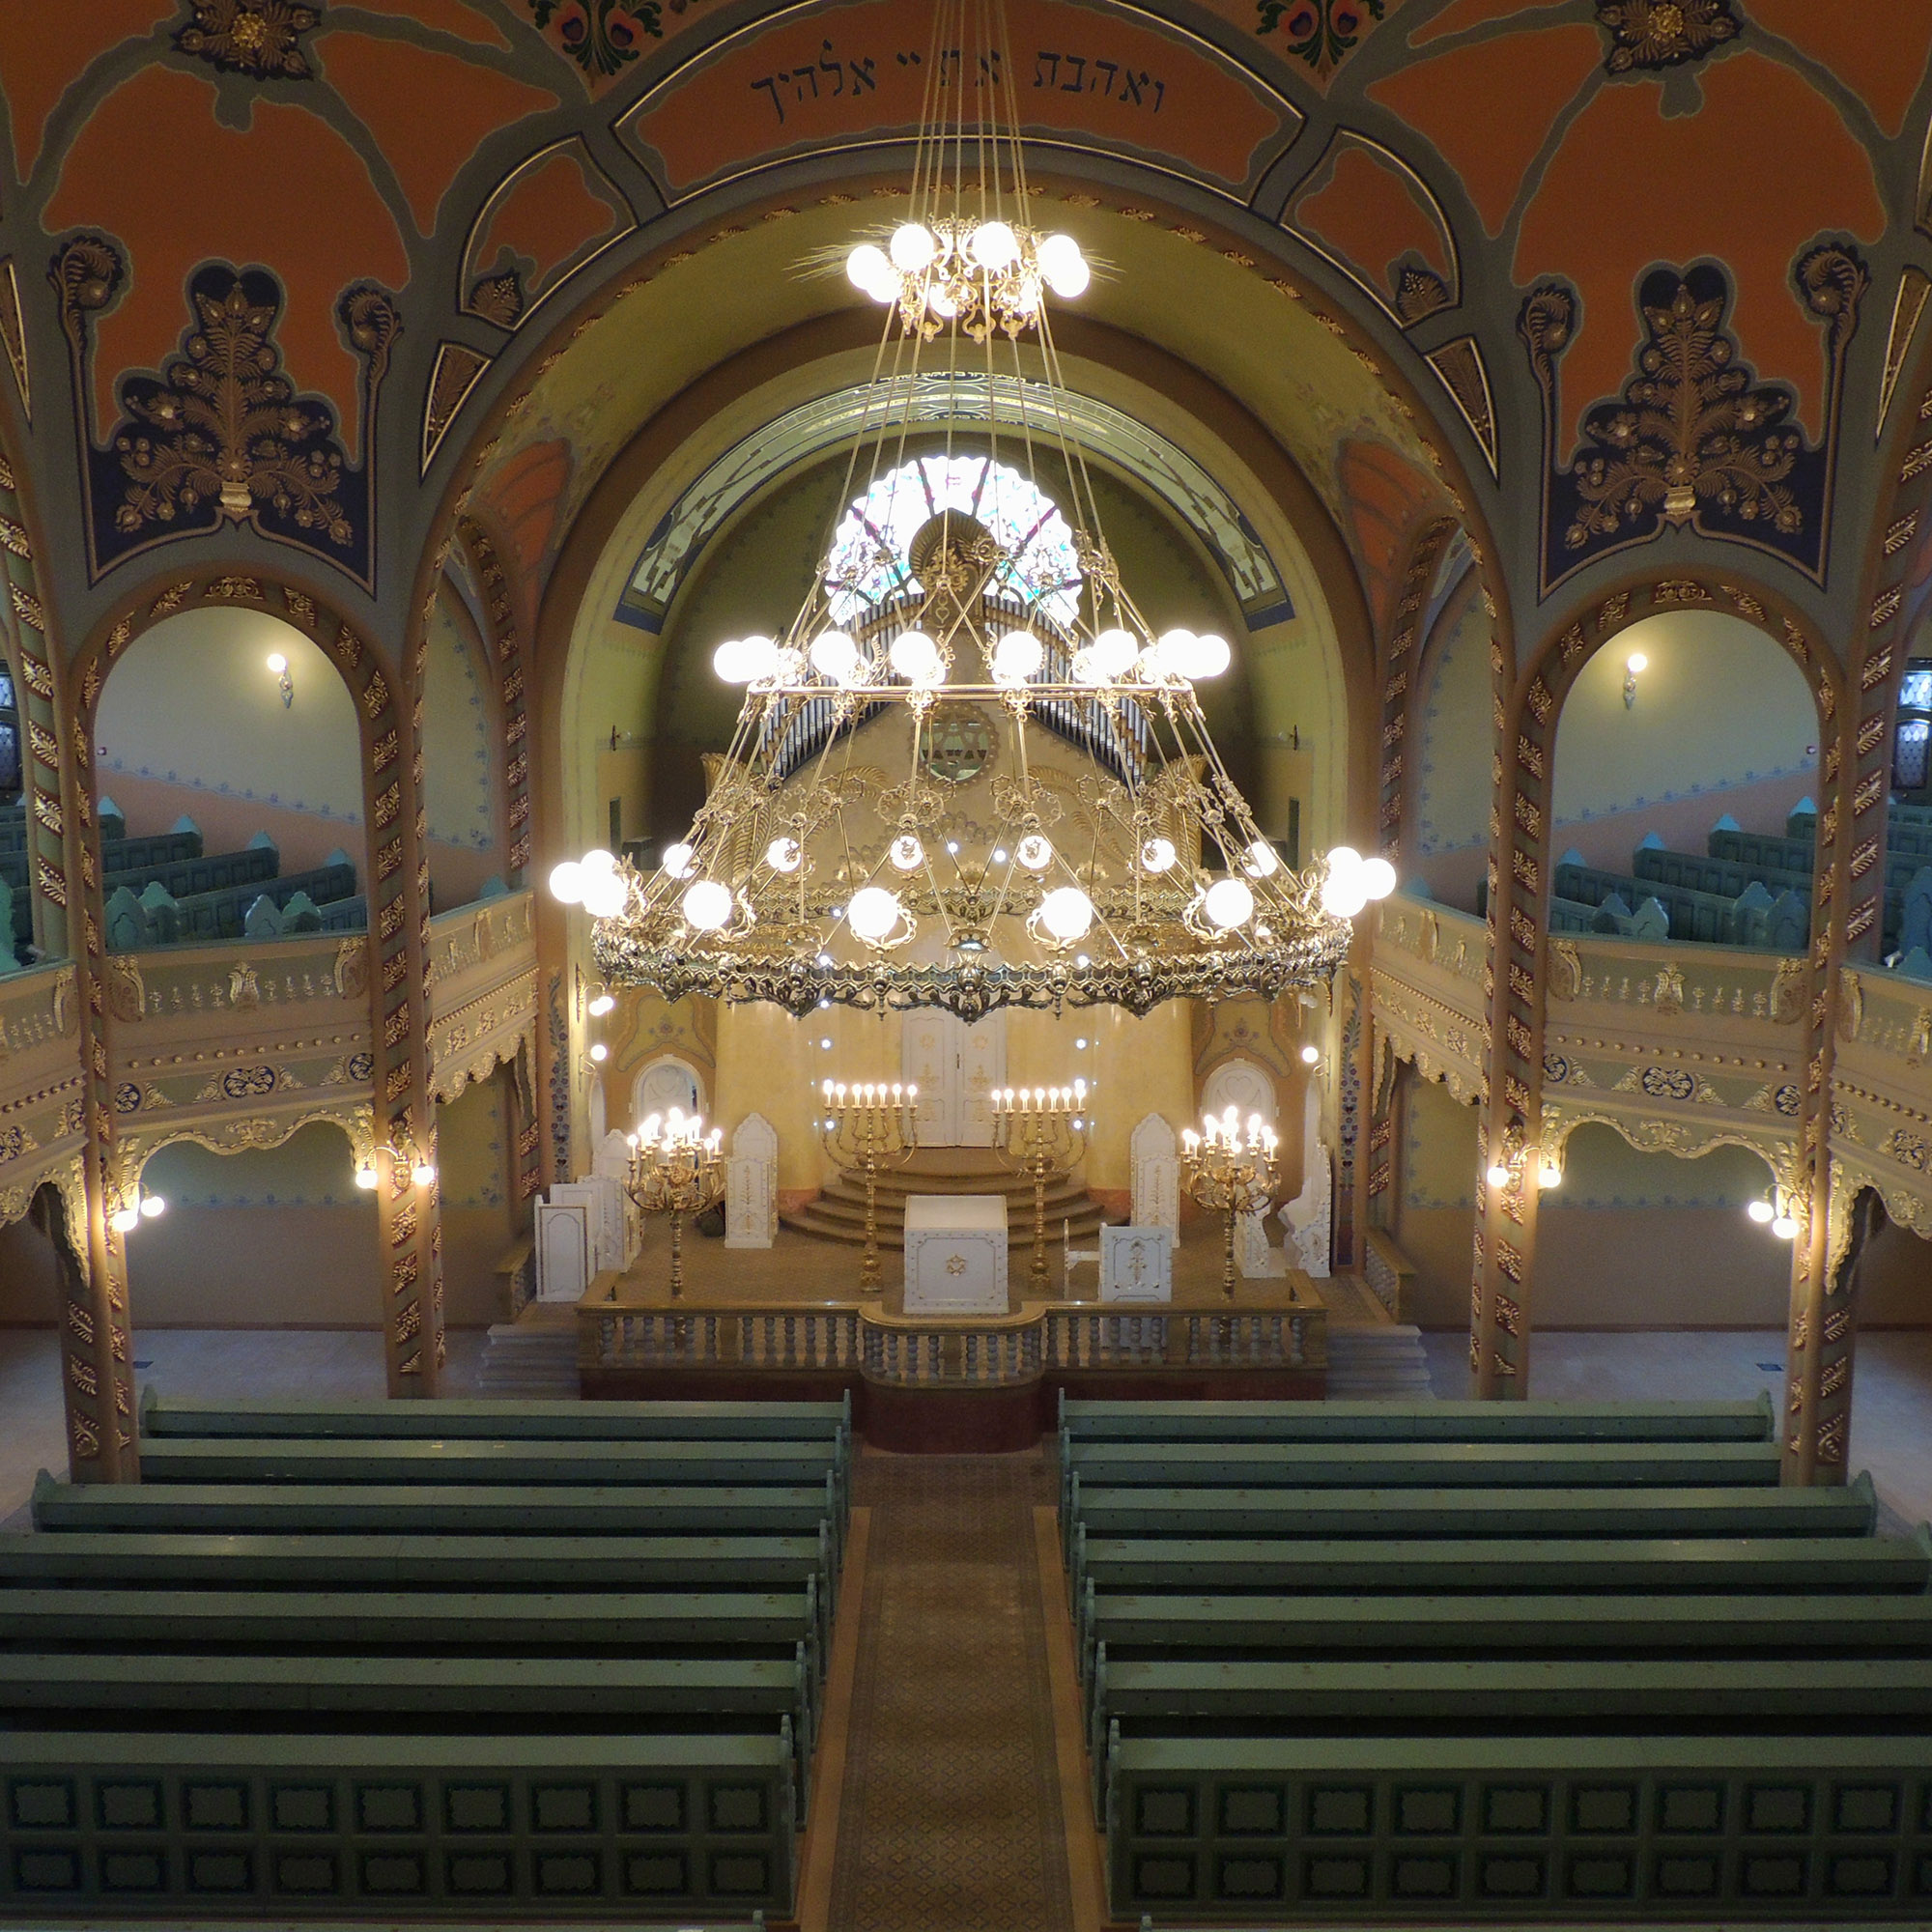 Inside the Subotica synagogue